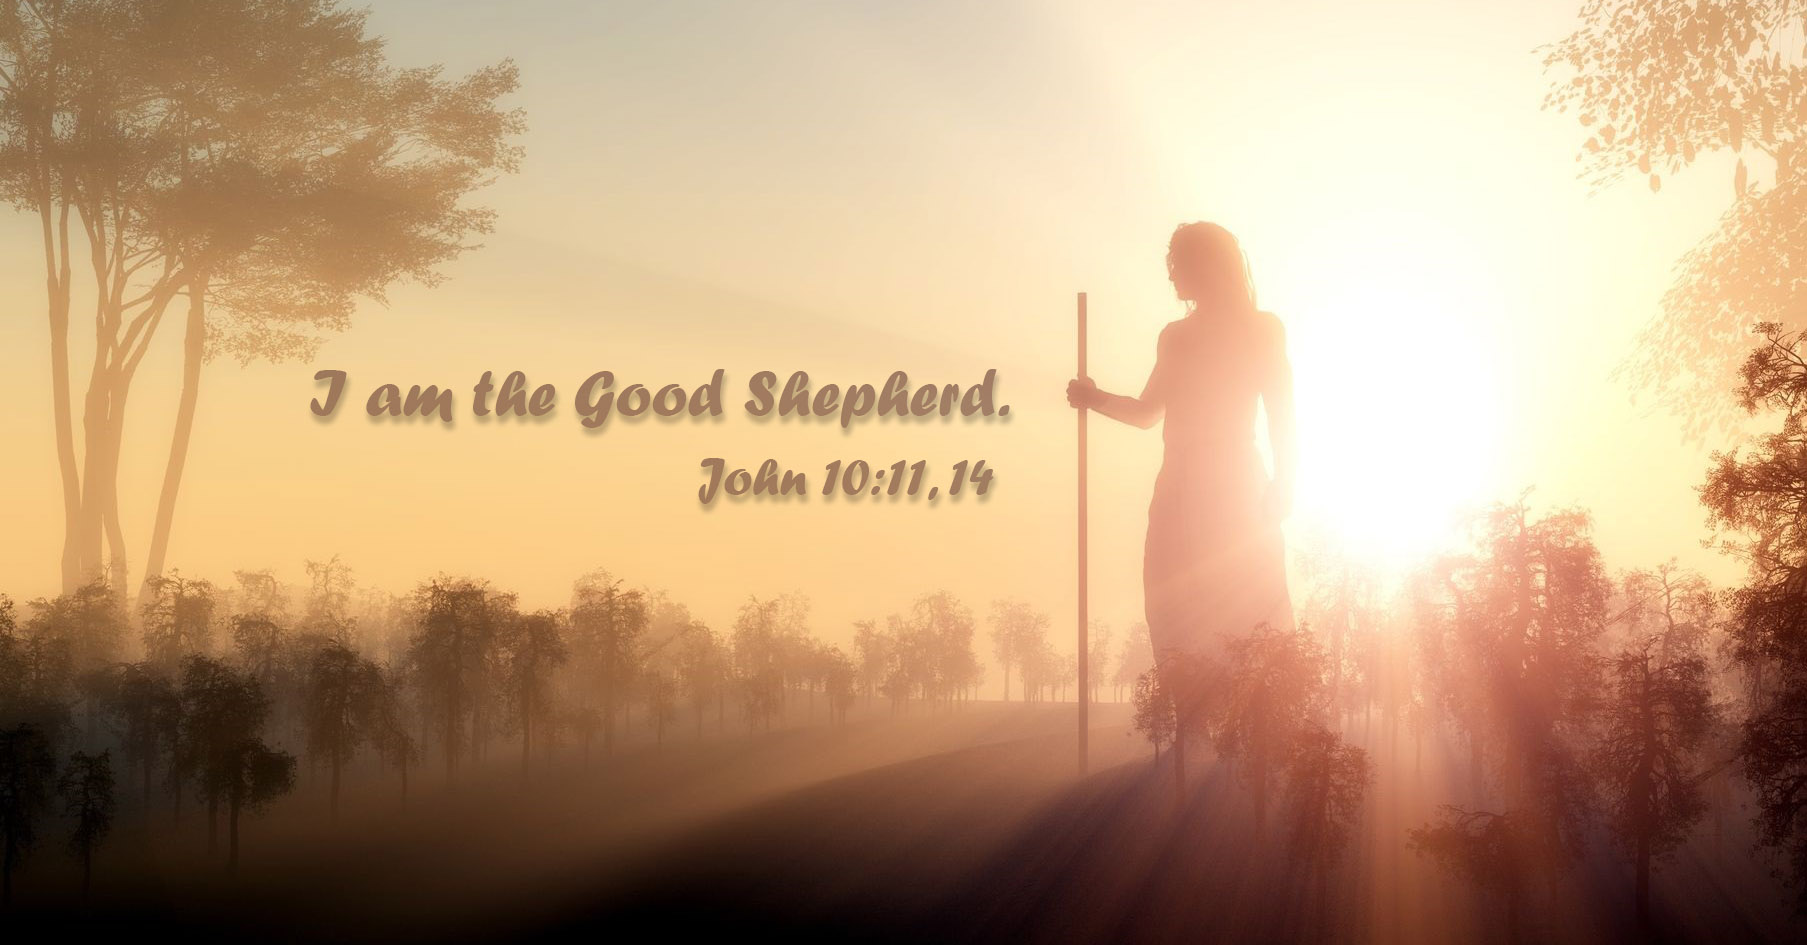 I am the good shepherd. John 10:11, John 10:14